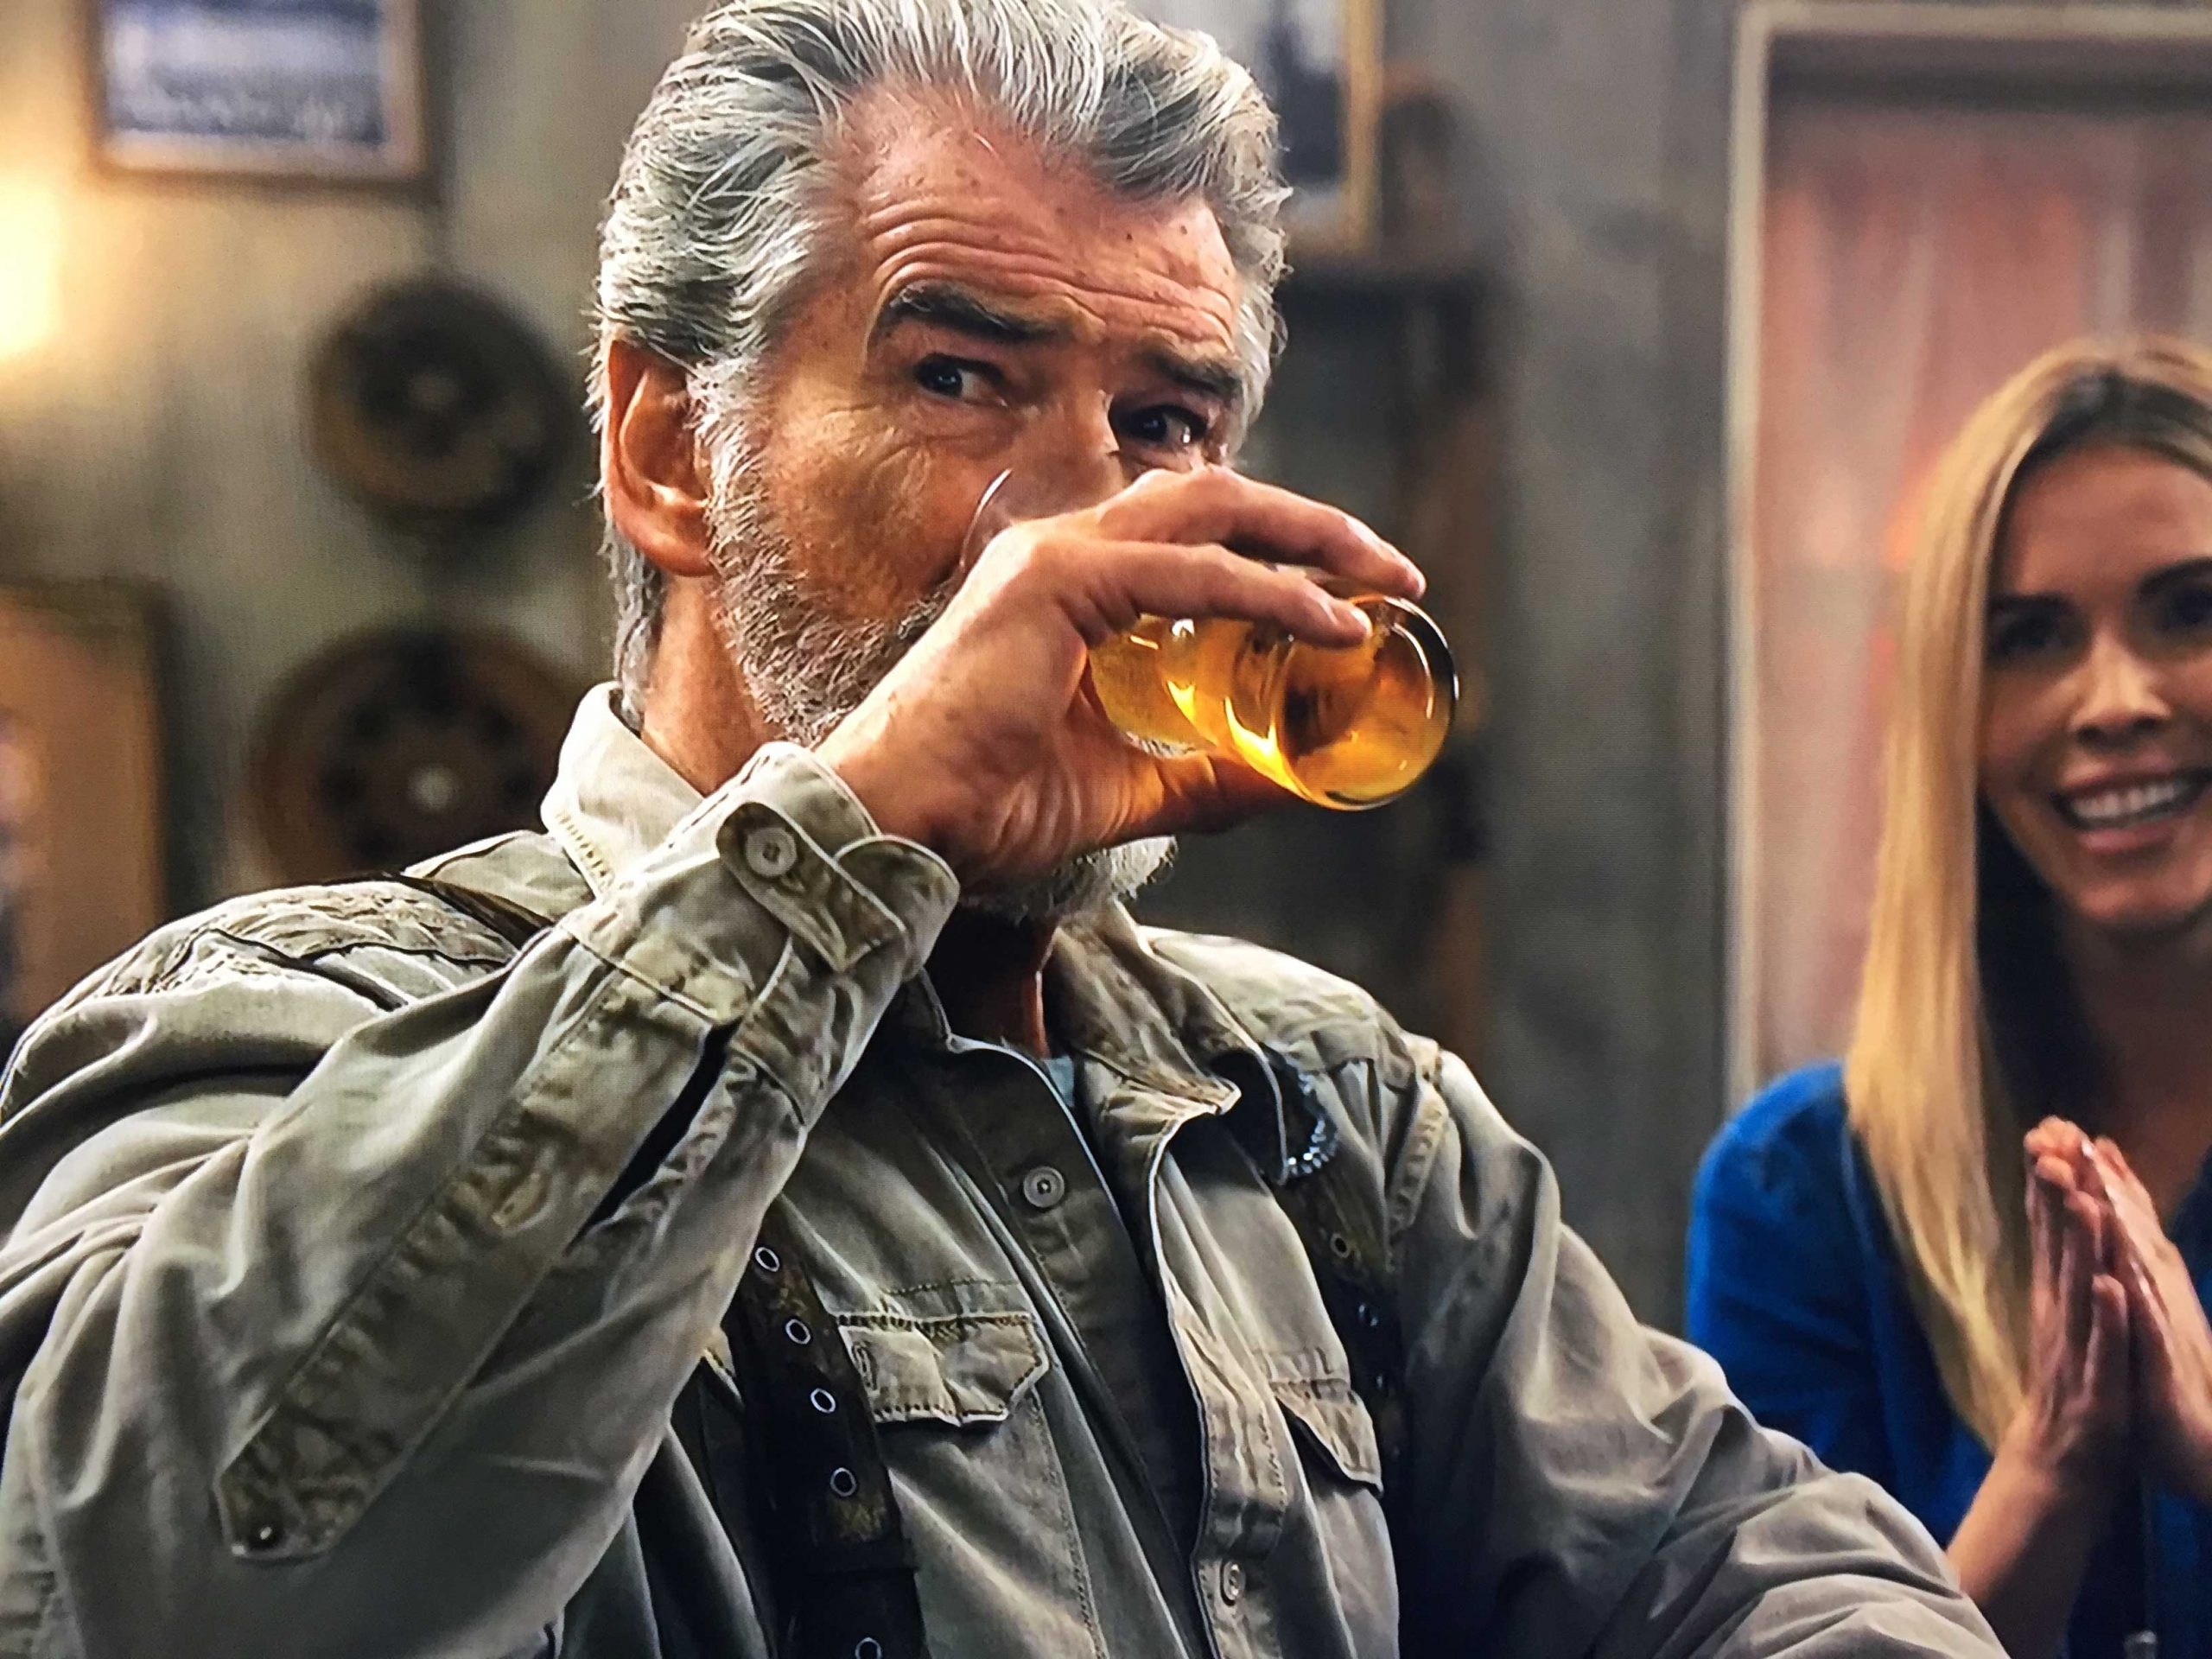 pierce brosnan drinking